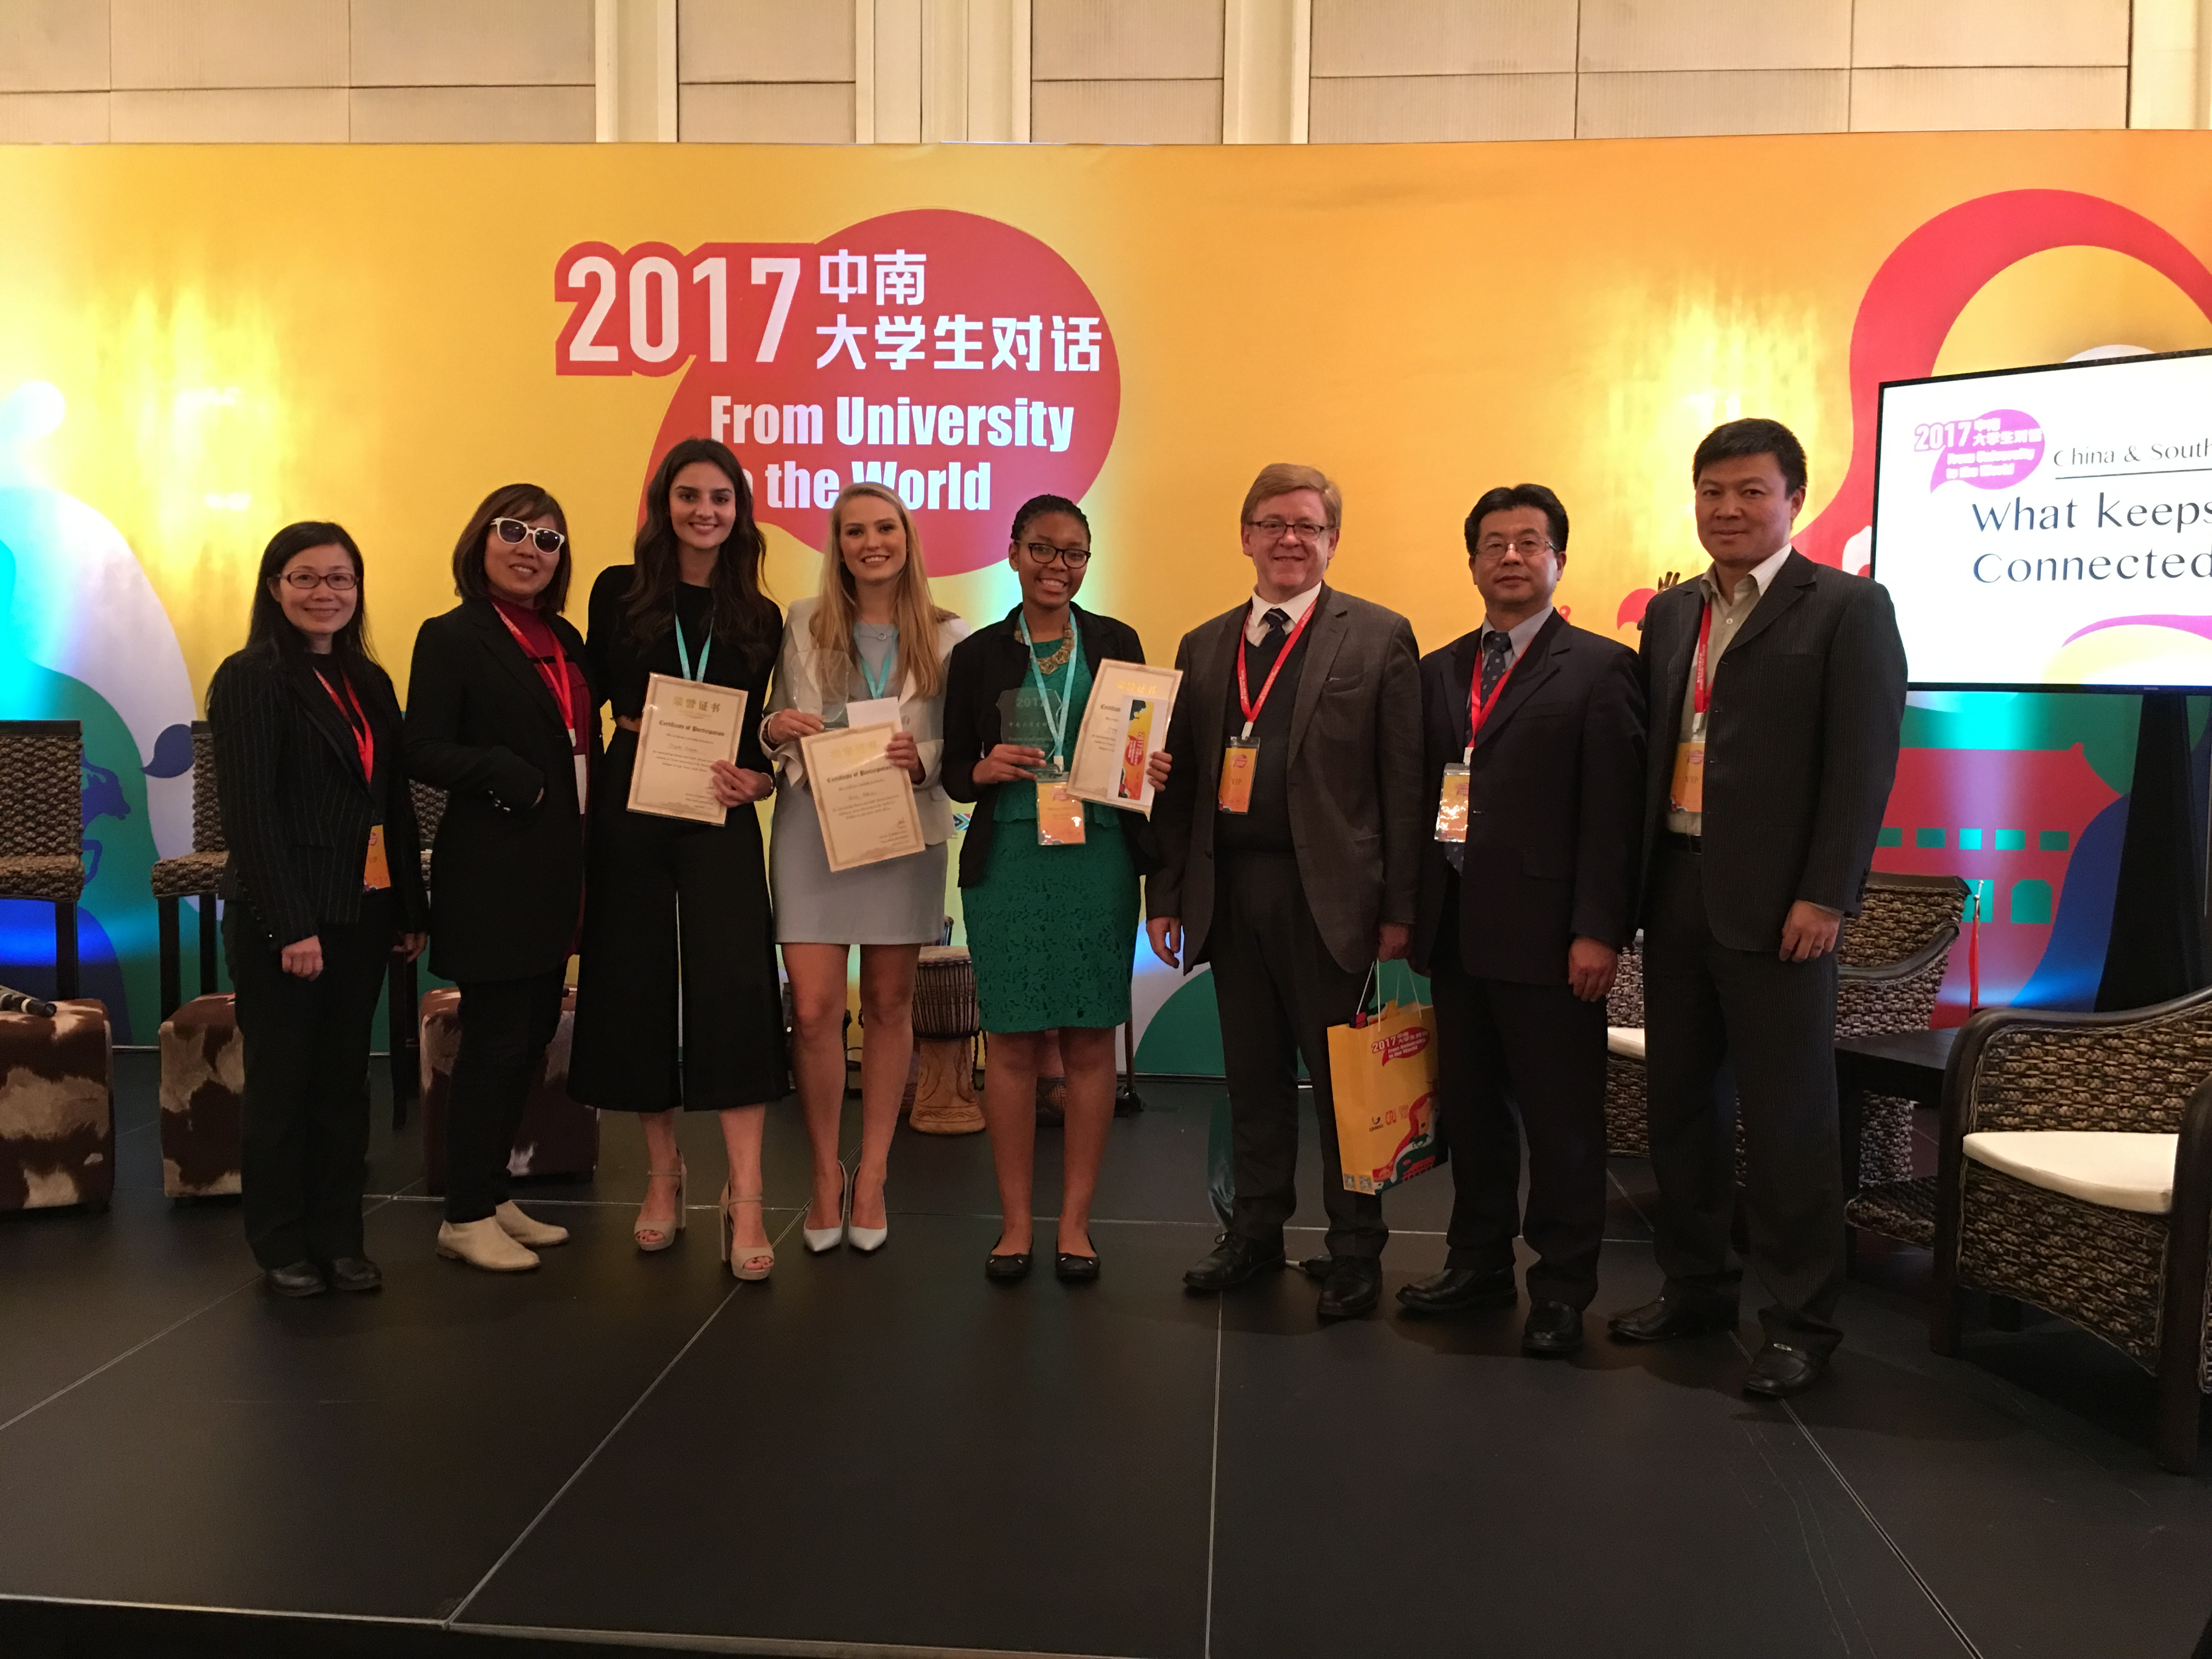 From University to the World 2017—A dialogue between Chinese and